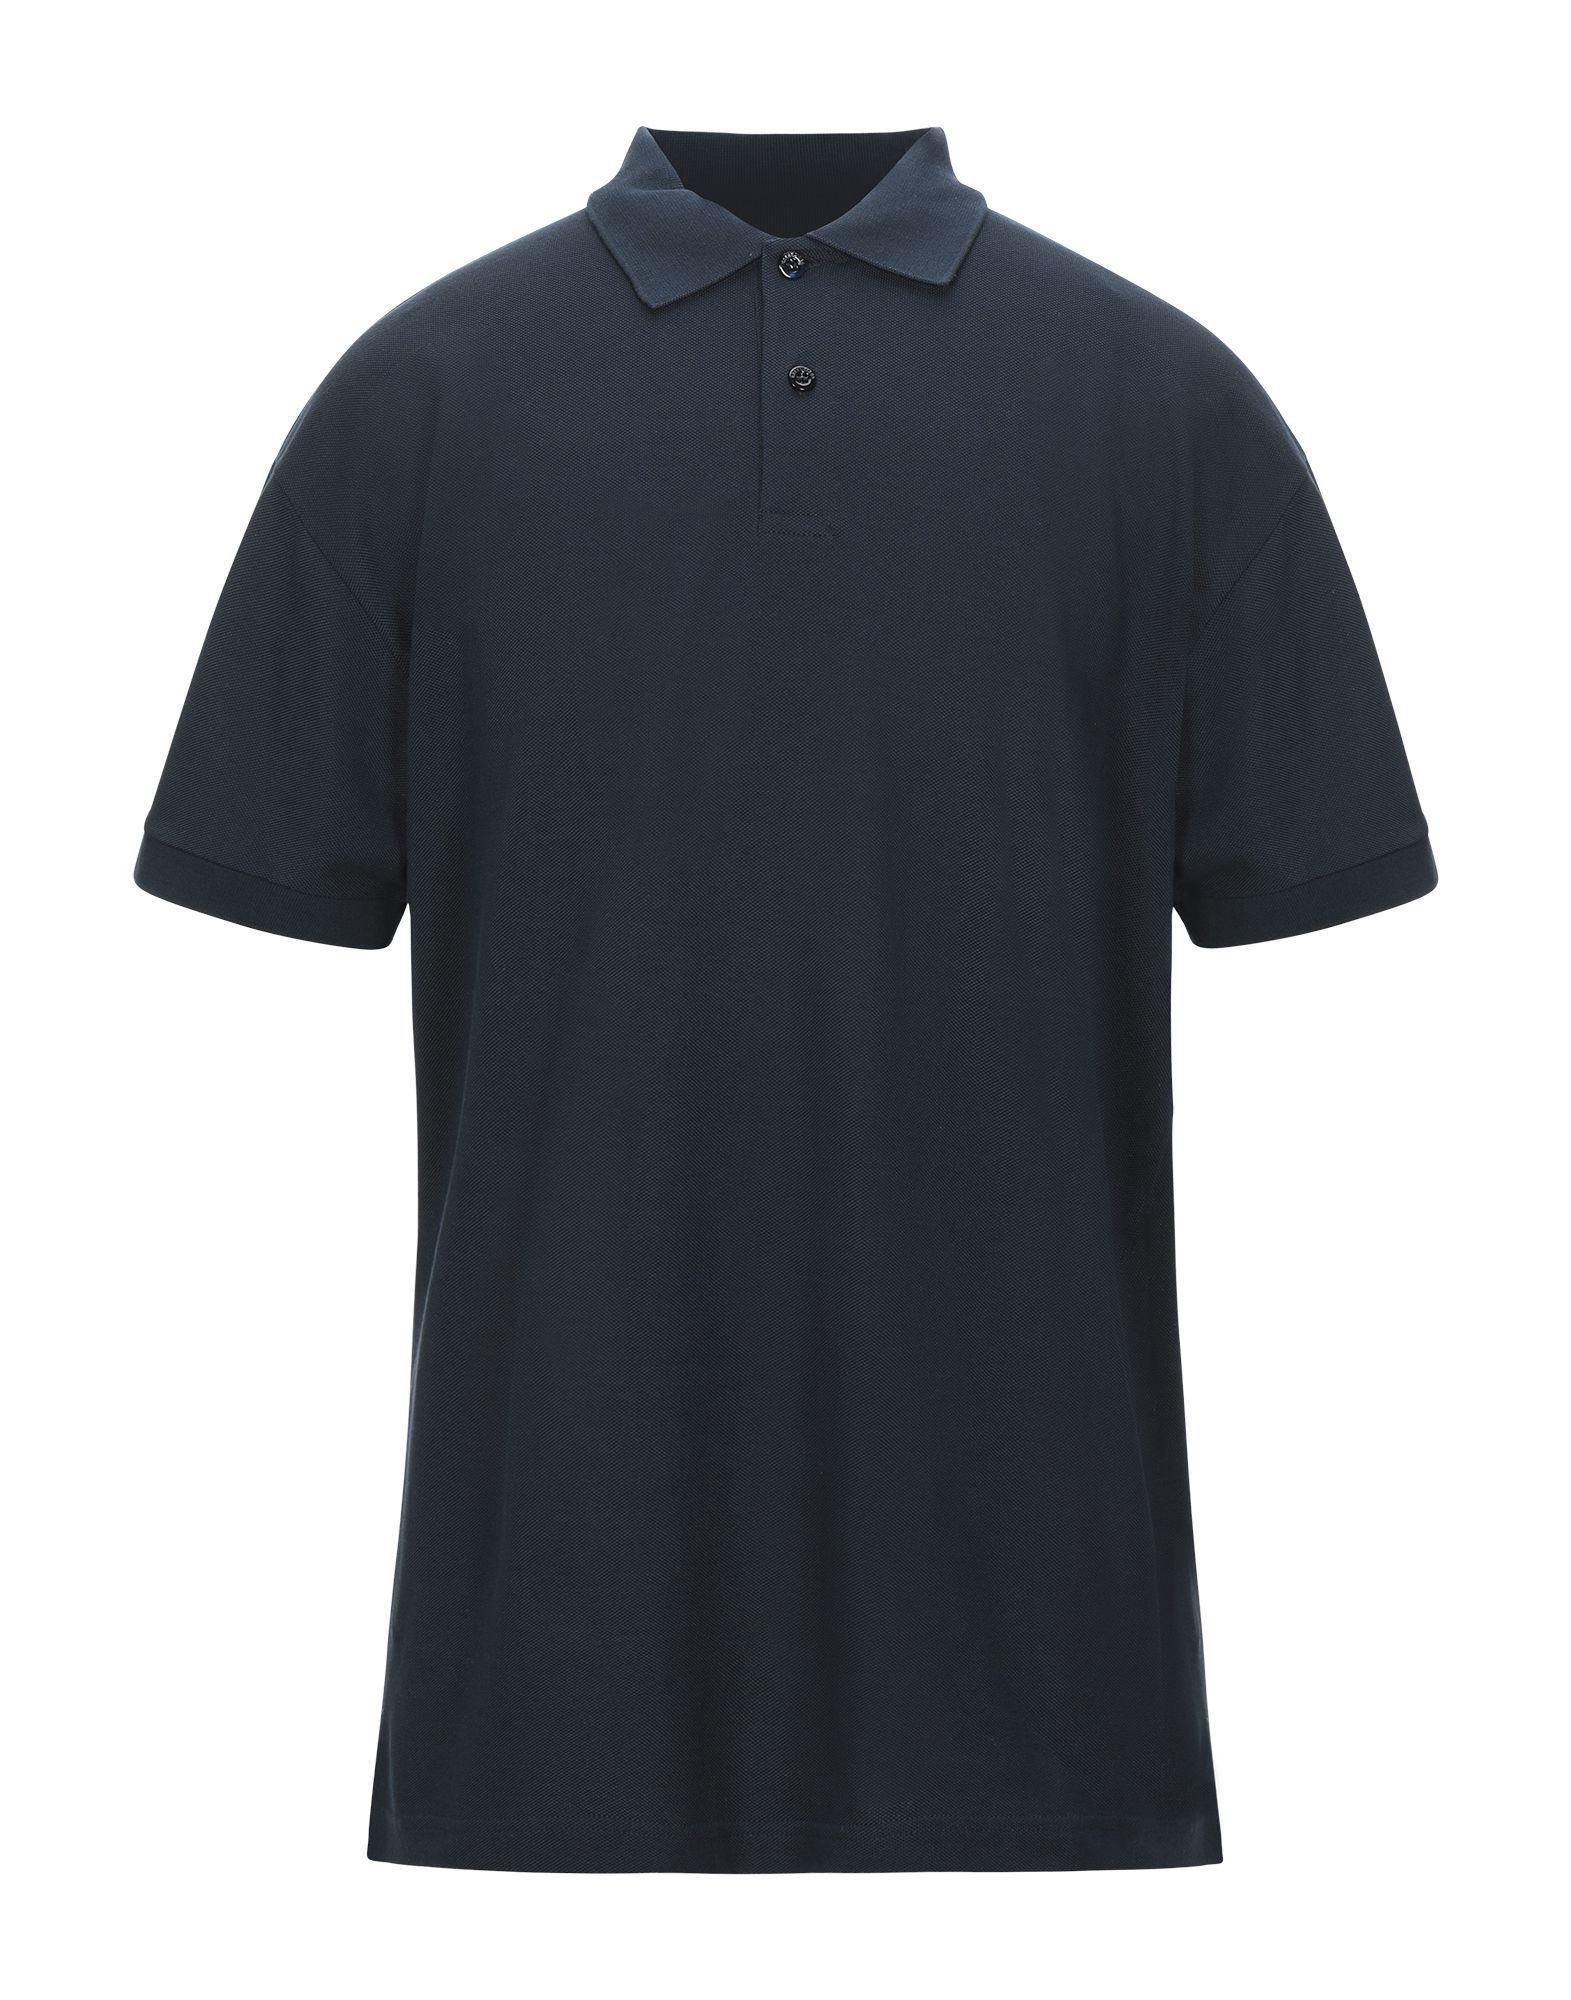 BALENCIAGA Polo shirts - Item 12476900